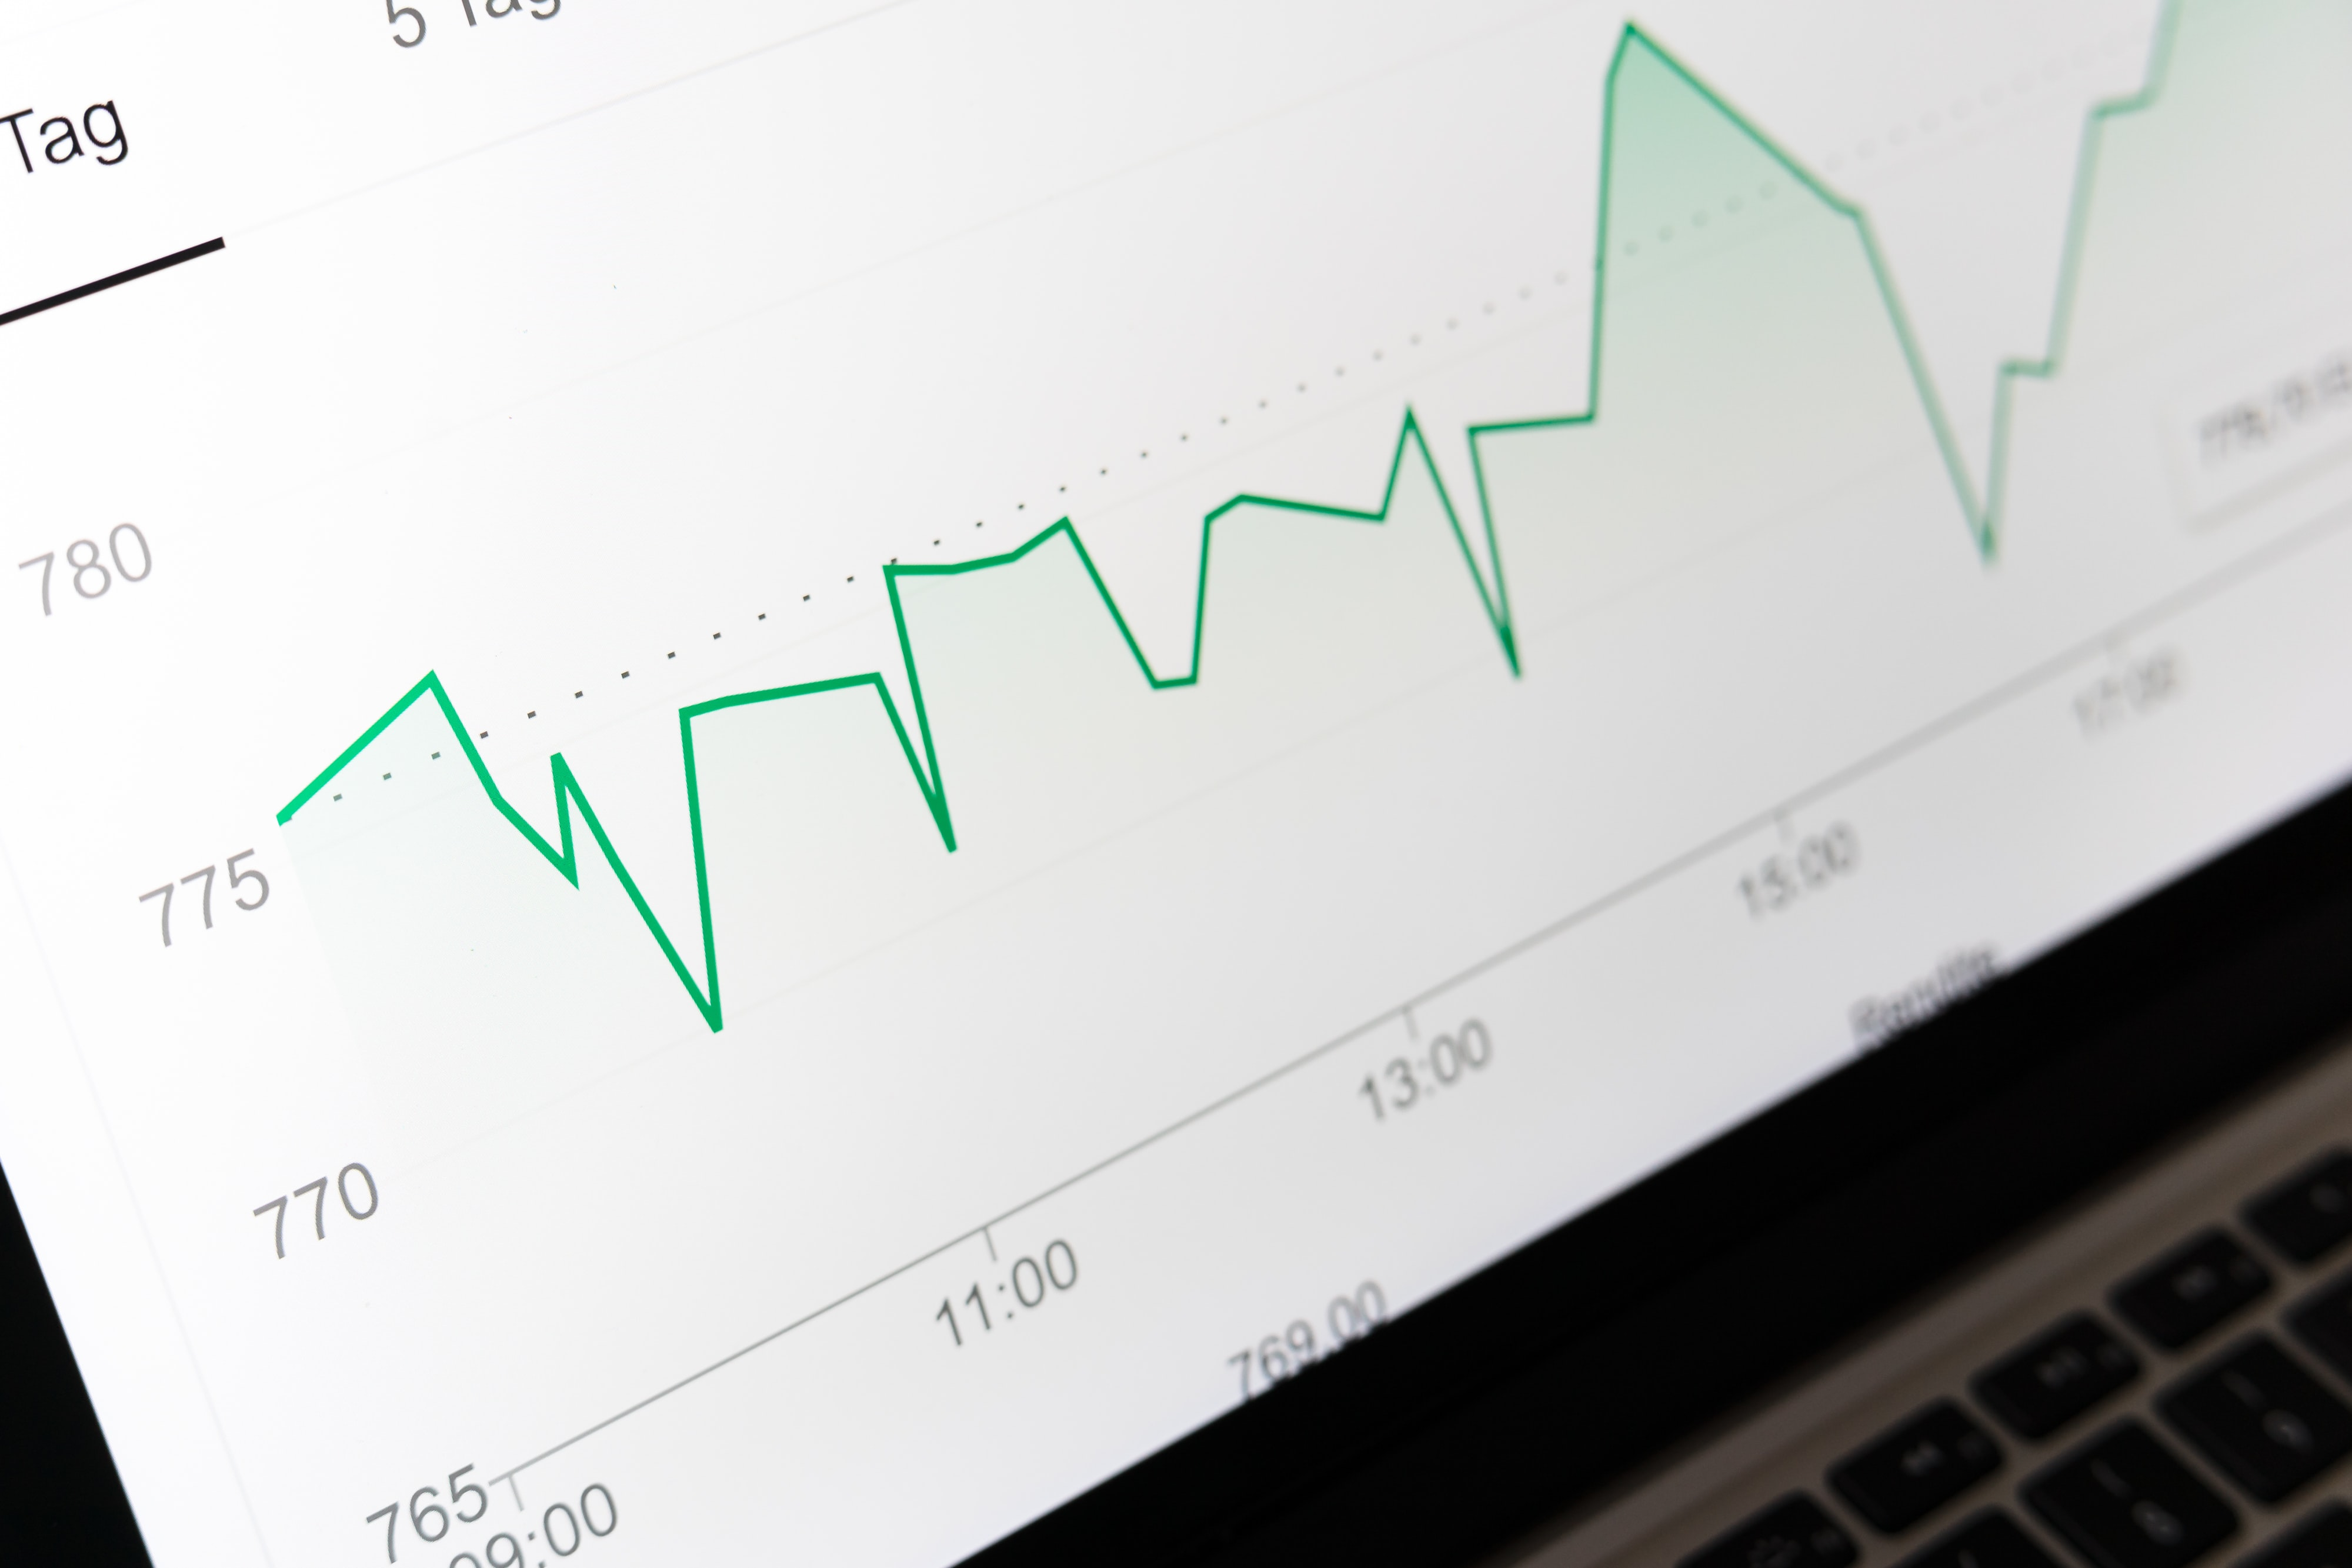 What is impacting the quality of your analytics and conversions data?